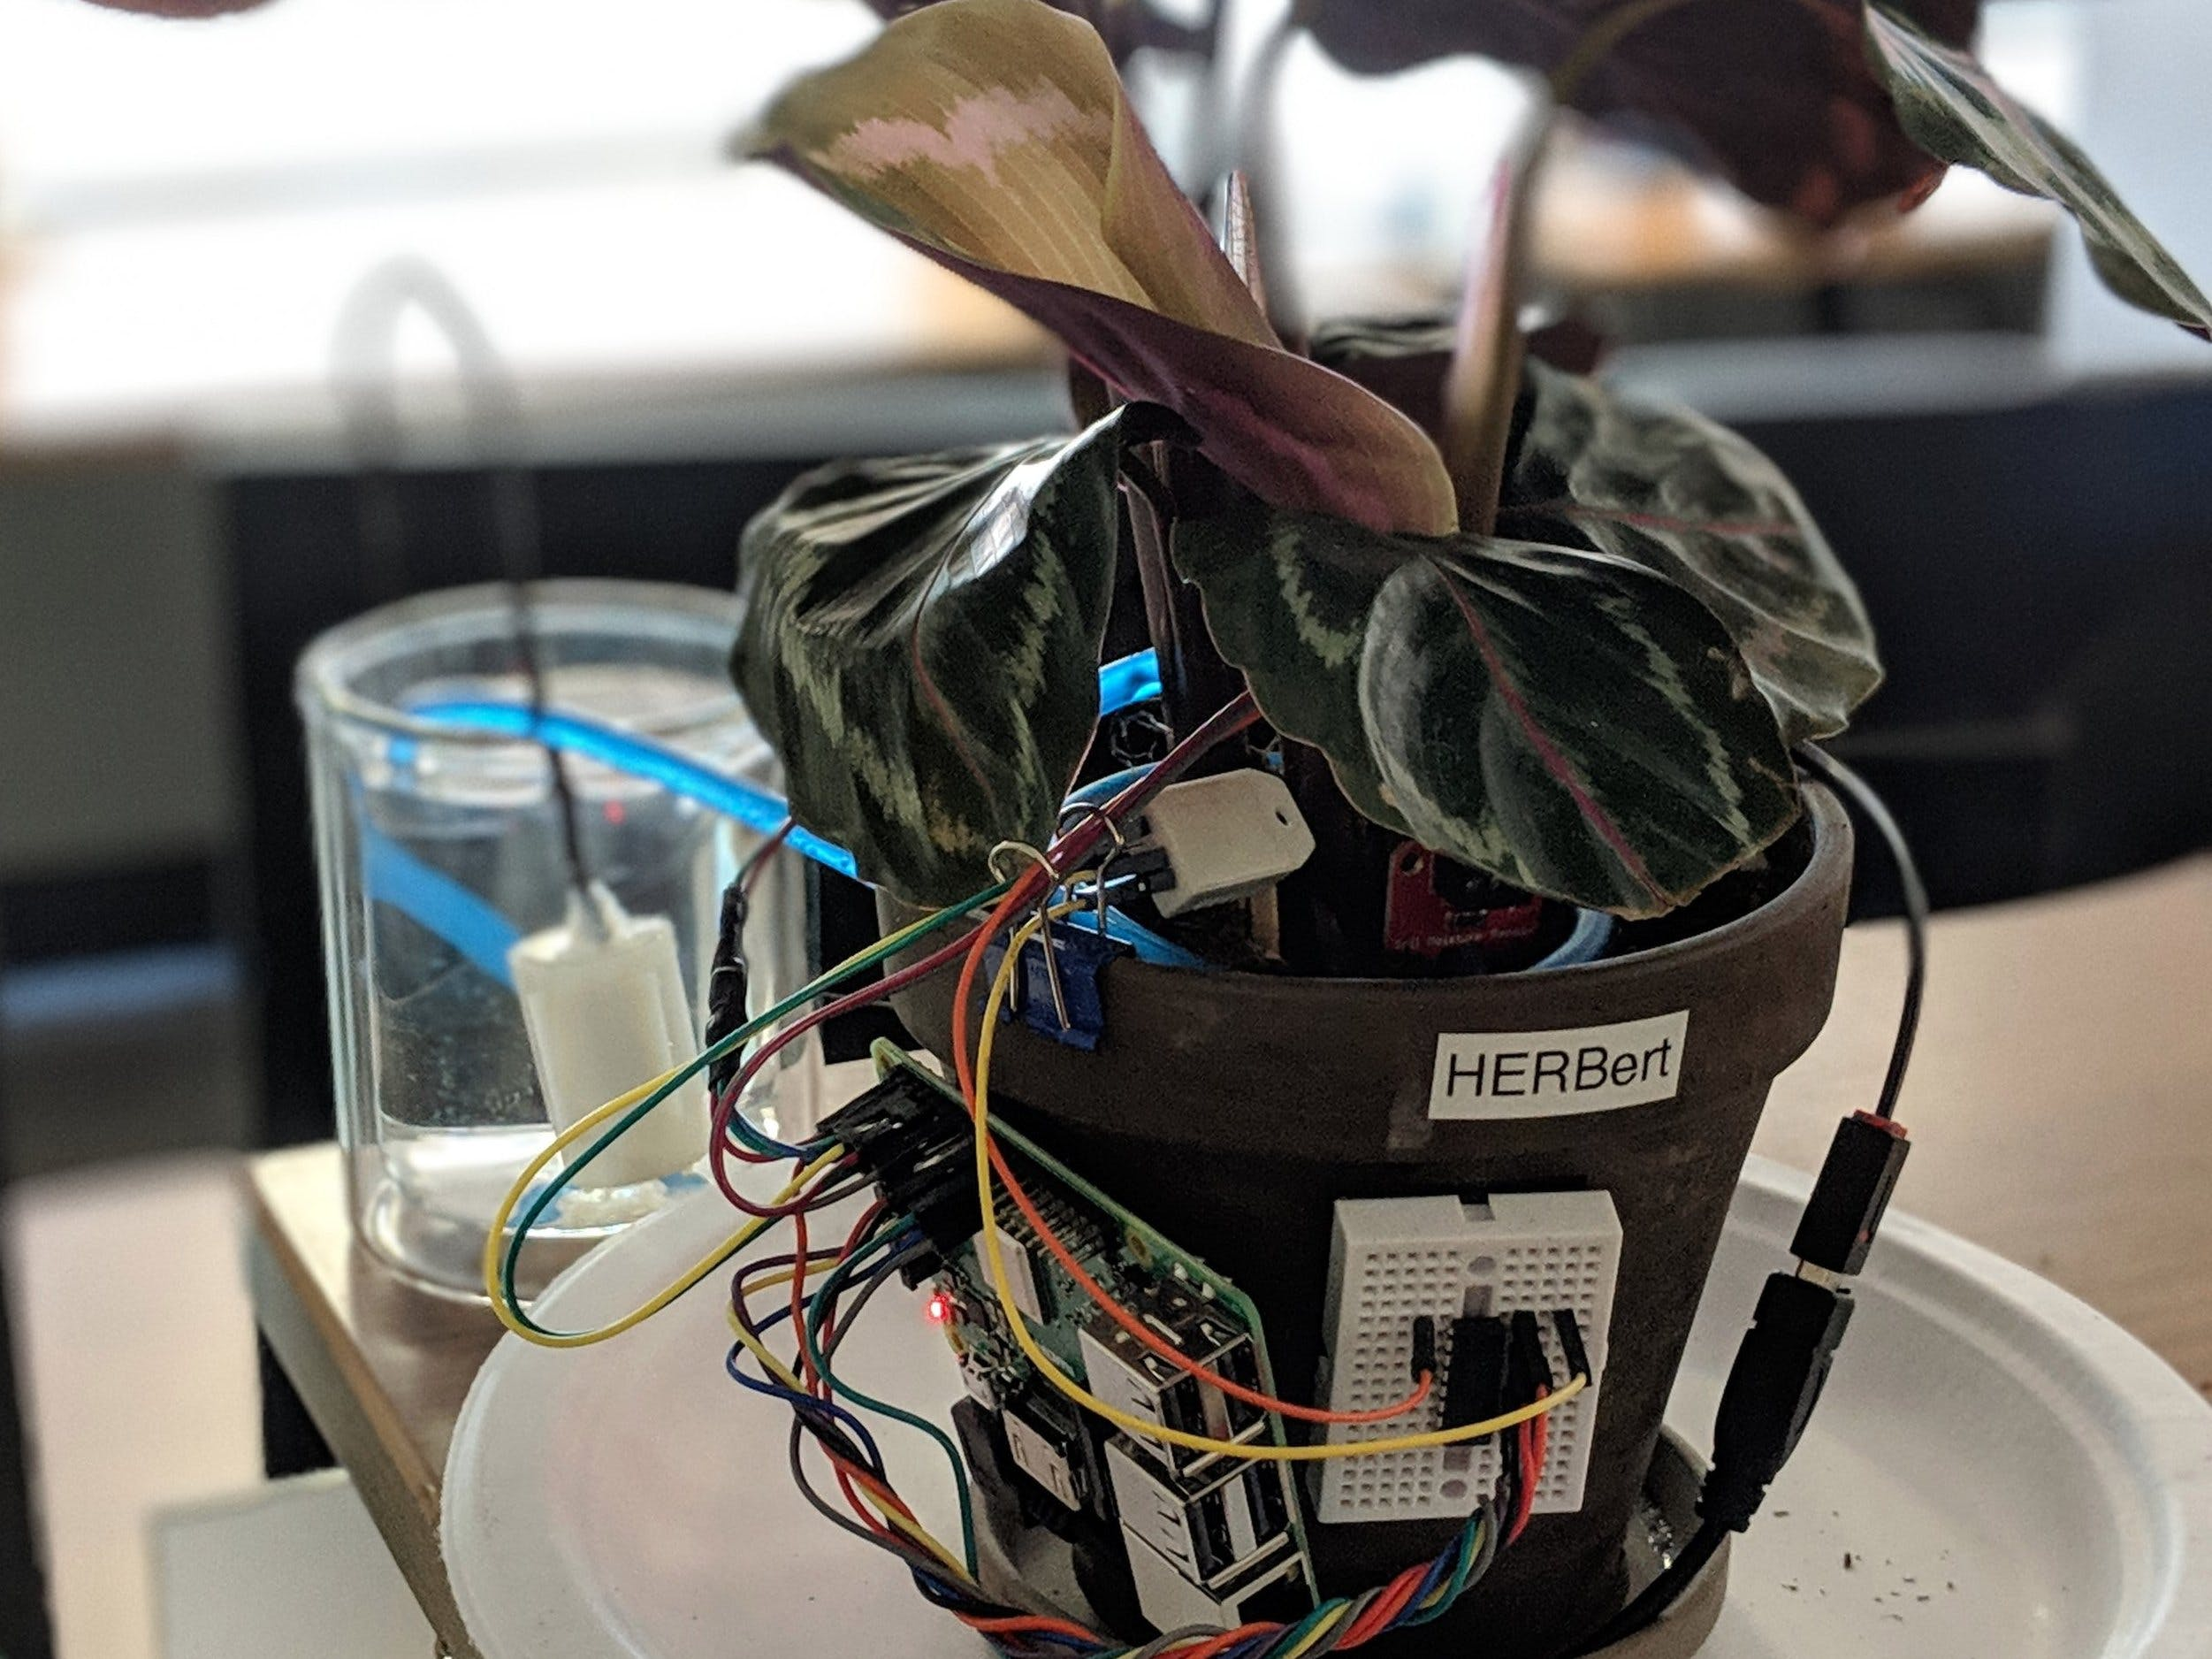 Herb(ert): A Desk Plant with Automated Irrigation